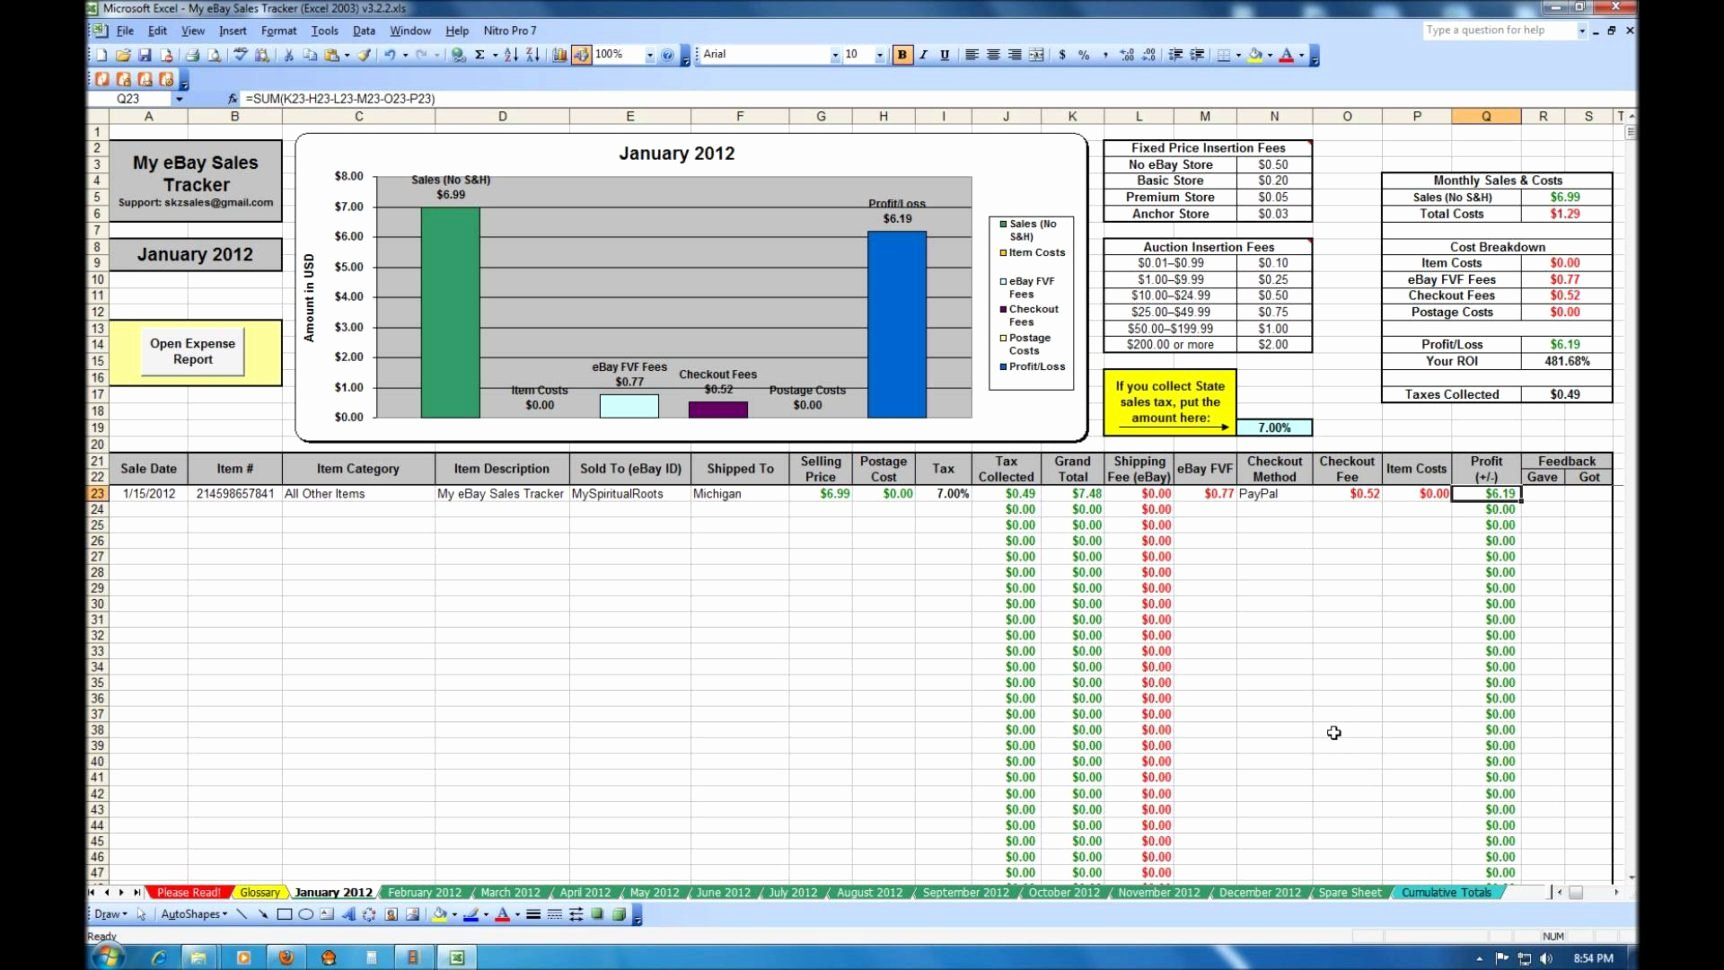 Applicant Tracking Spreadsheet Template New Sales Tracking Spreadsheet Template Tracking Spreadsheet